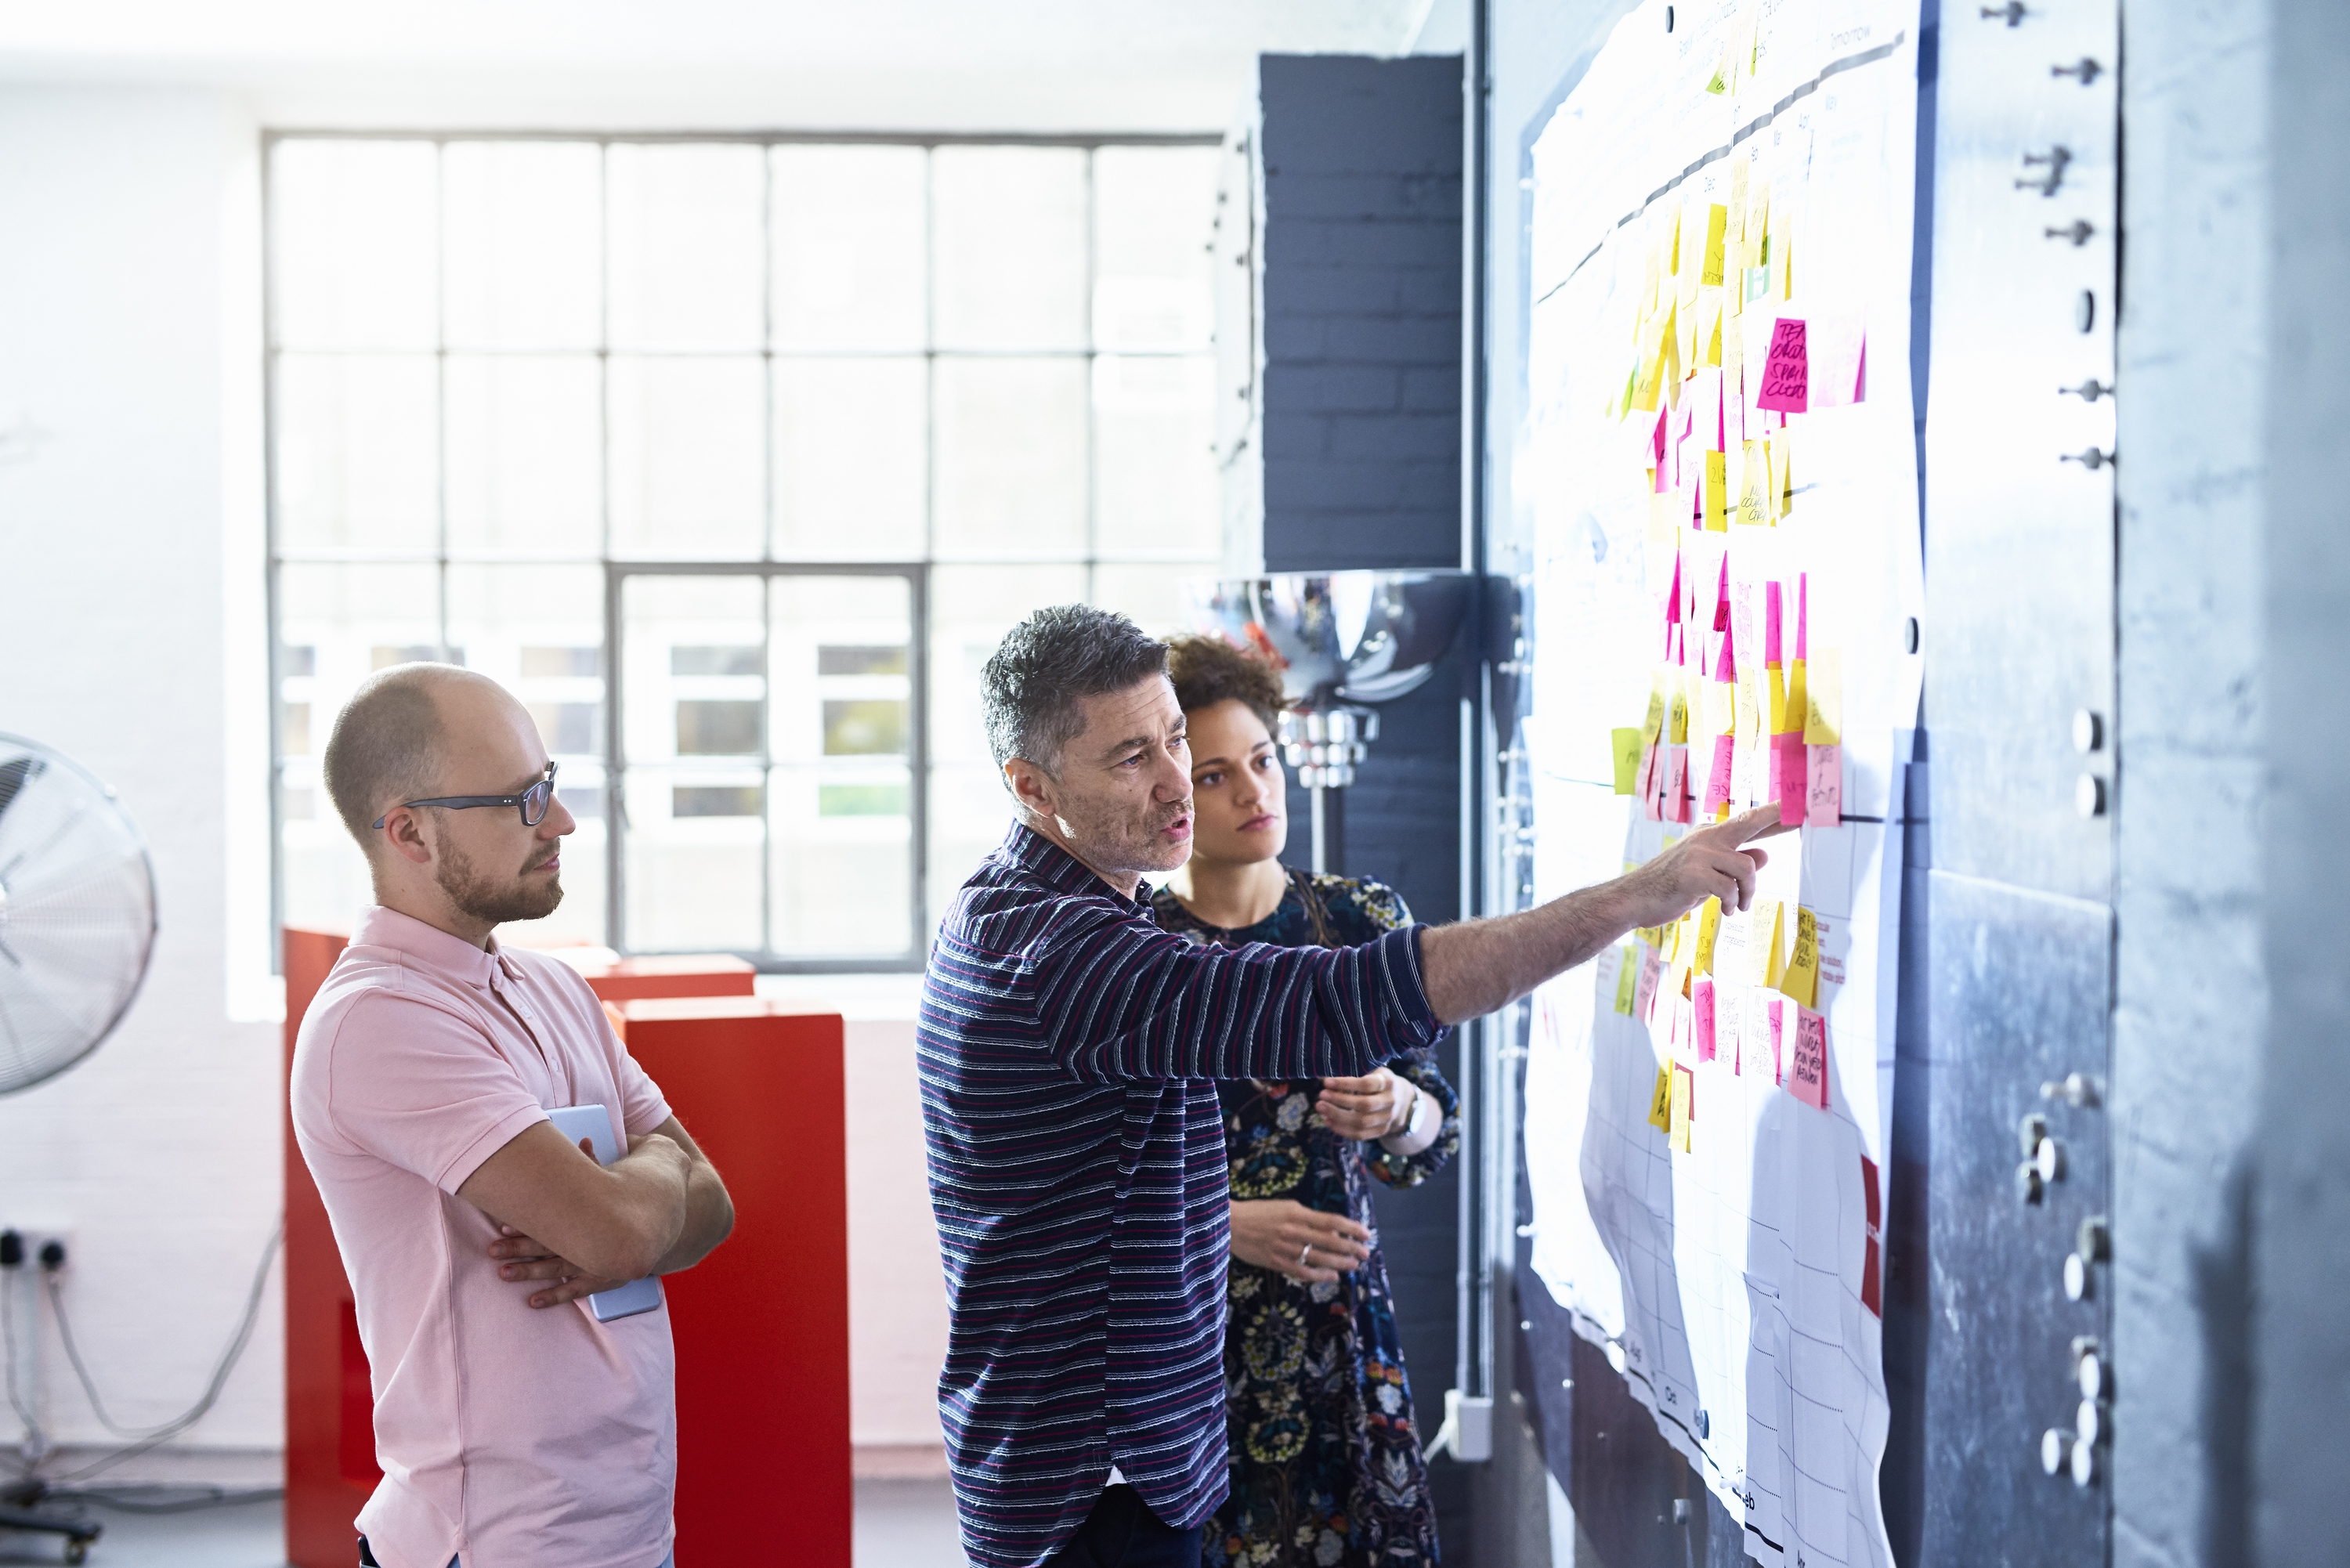 4 digital marketing tips to take your business to the next level in 2020